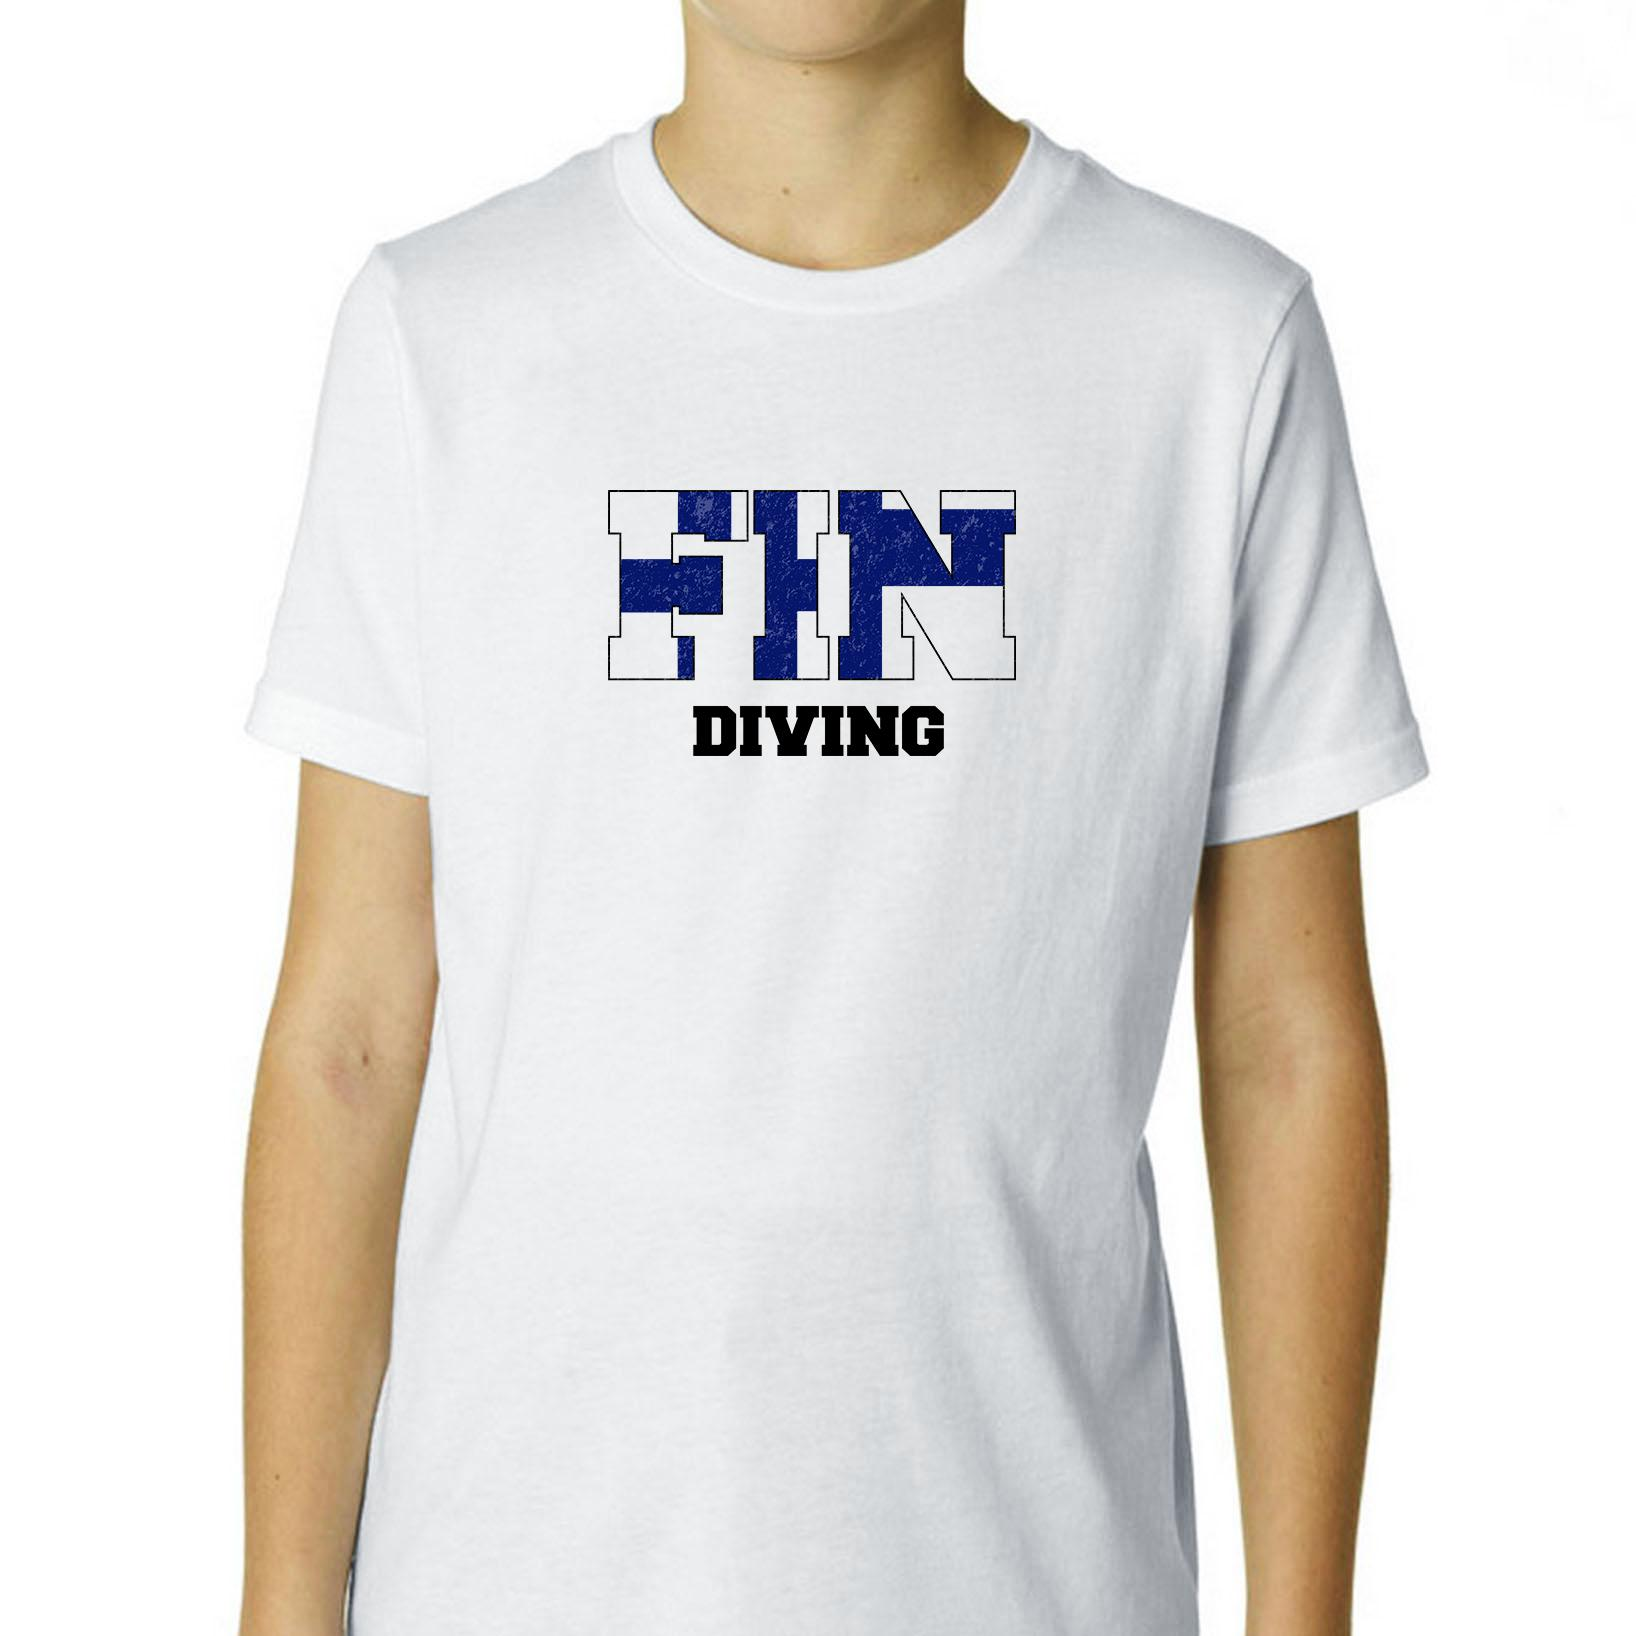 Finland Diving - Olympic Games - Rio - Flag Boy's Cotton Youth T-Shirt